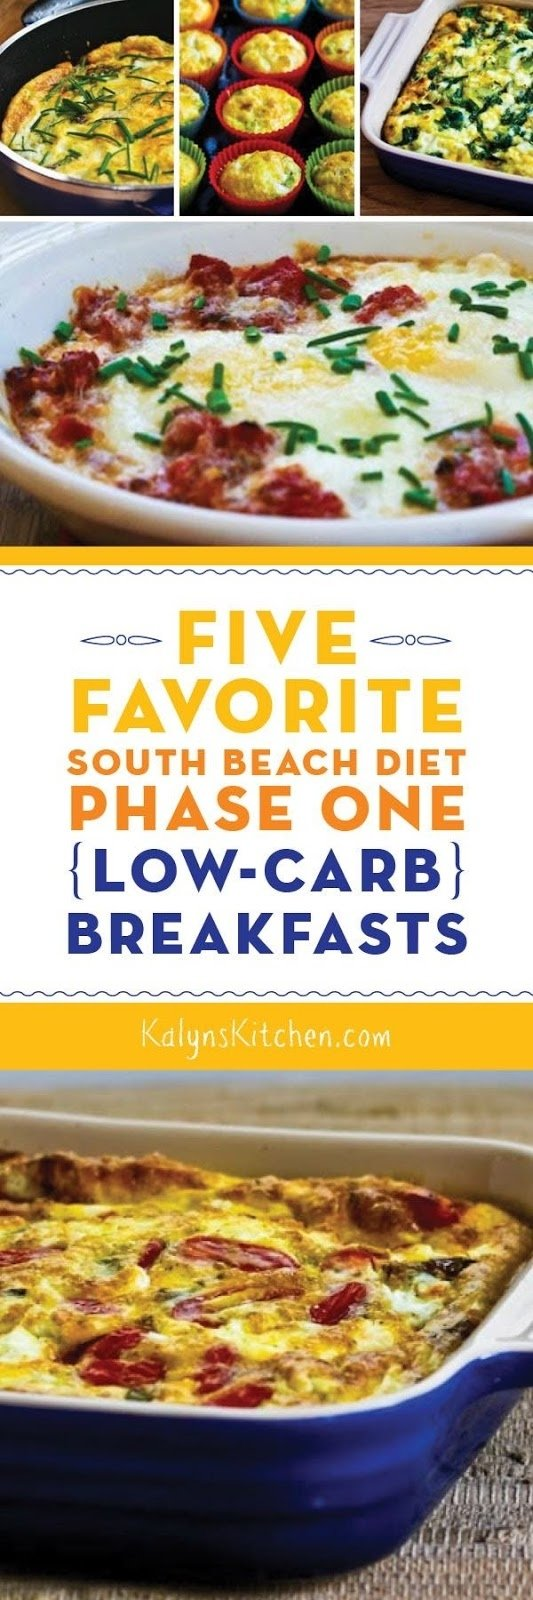 10 Nice South Beach Diet Breakfast Ideas five favorite south beach diet phase one low carb breakfasts 2021